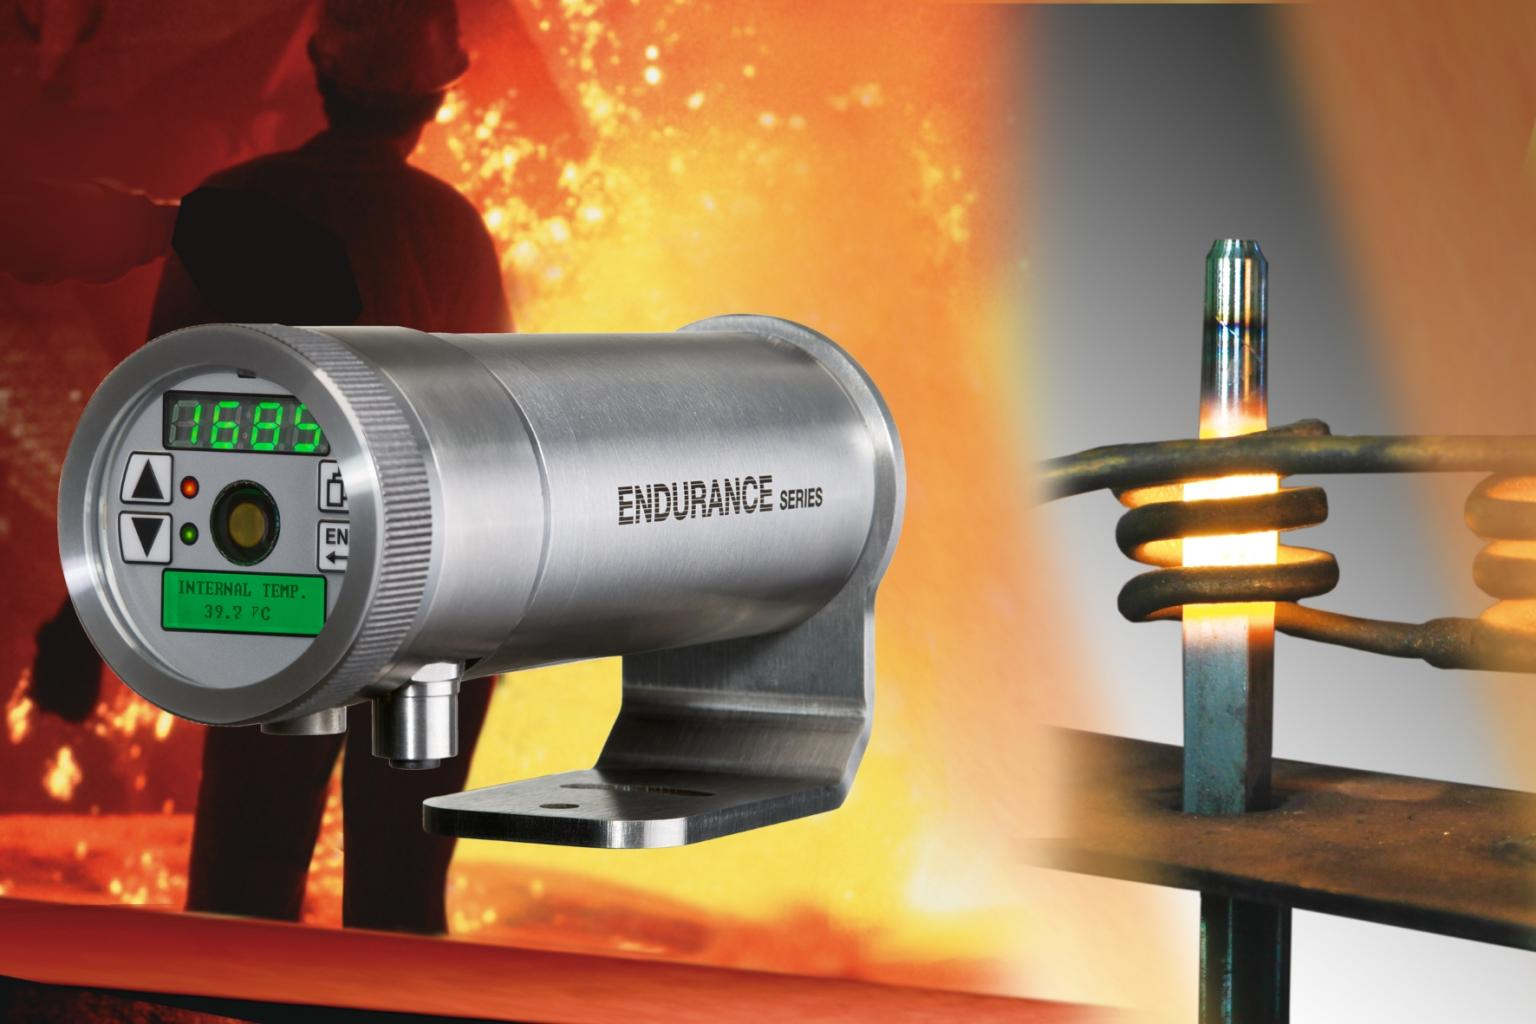 The rugged new infrared thermometers ensure high precision and flexible integration in all kinds of process monitoring set-ups